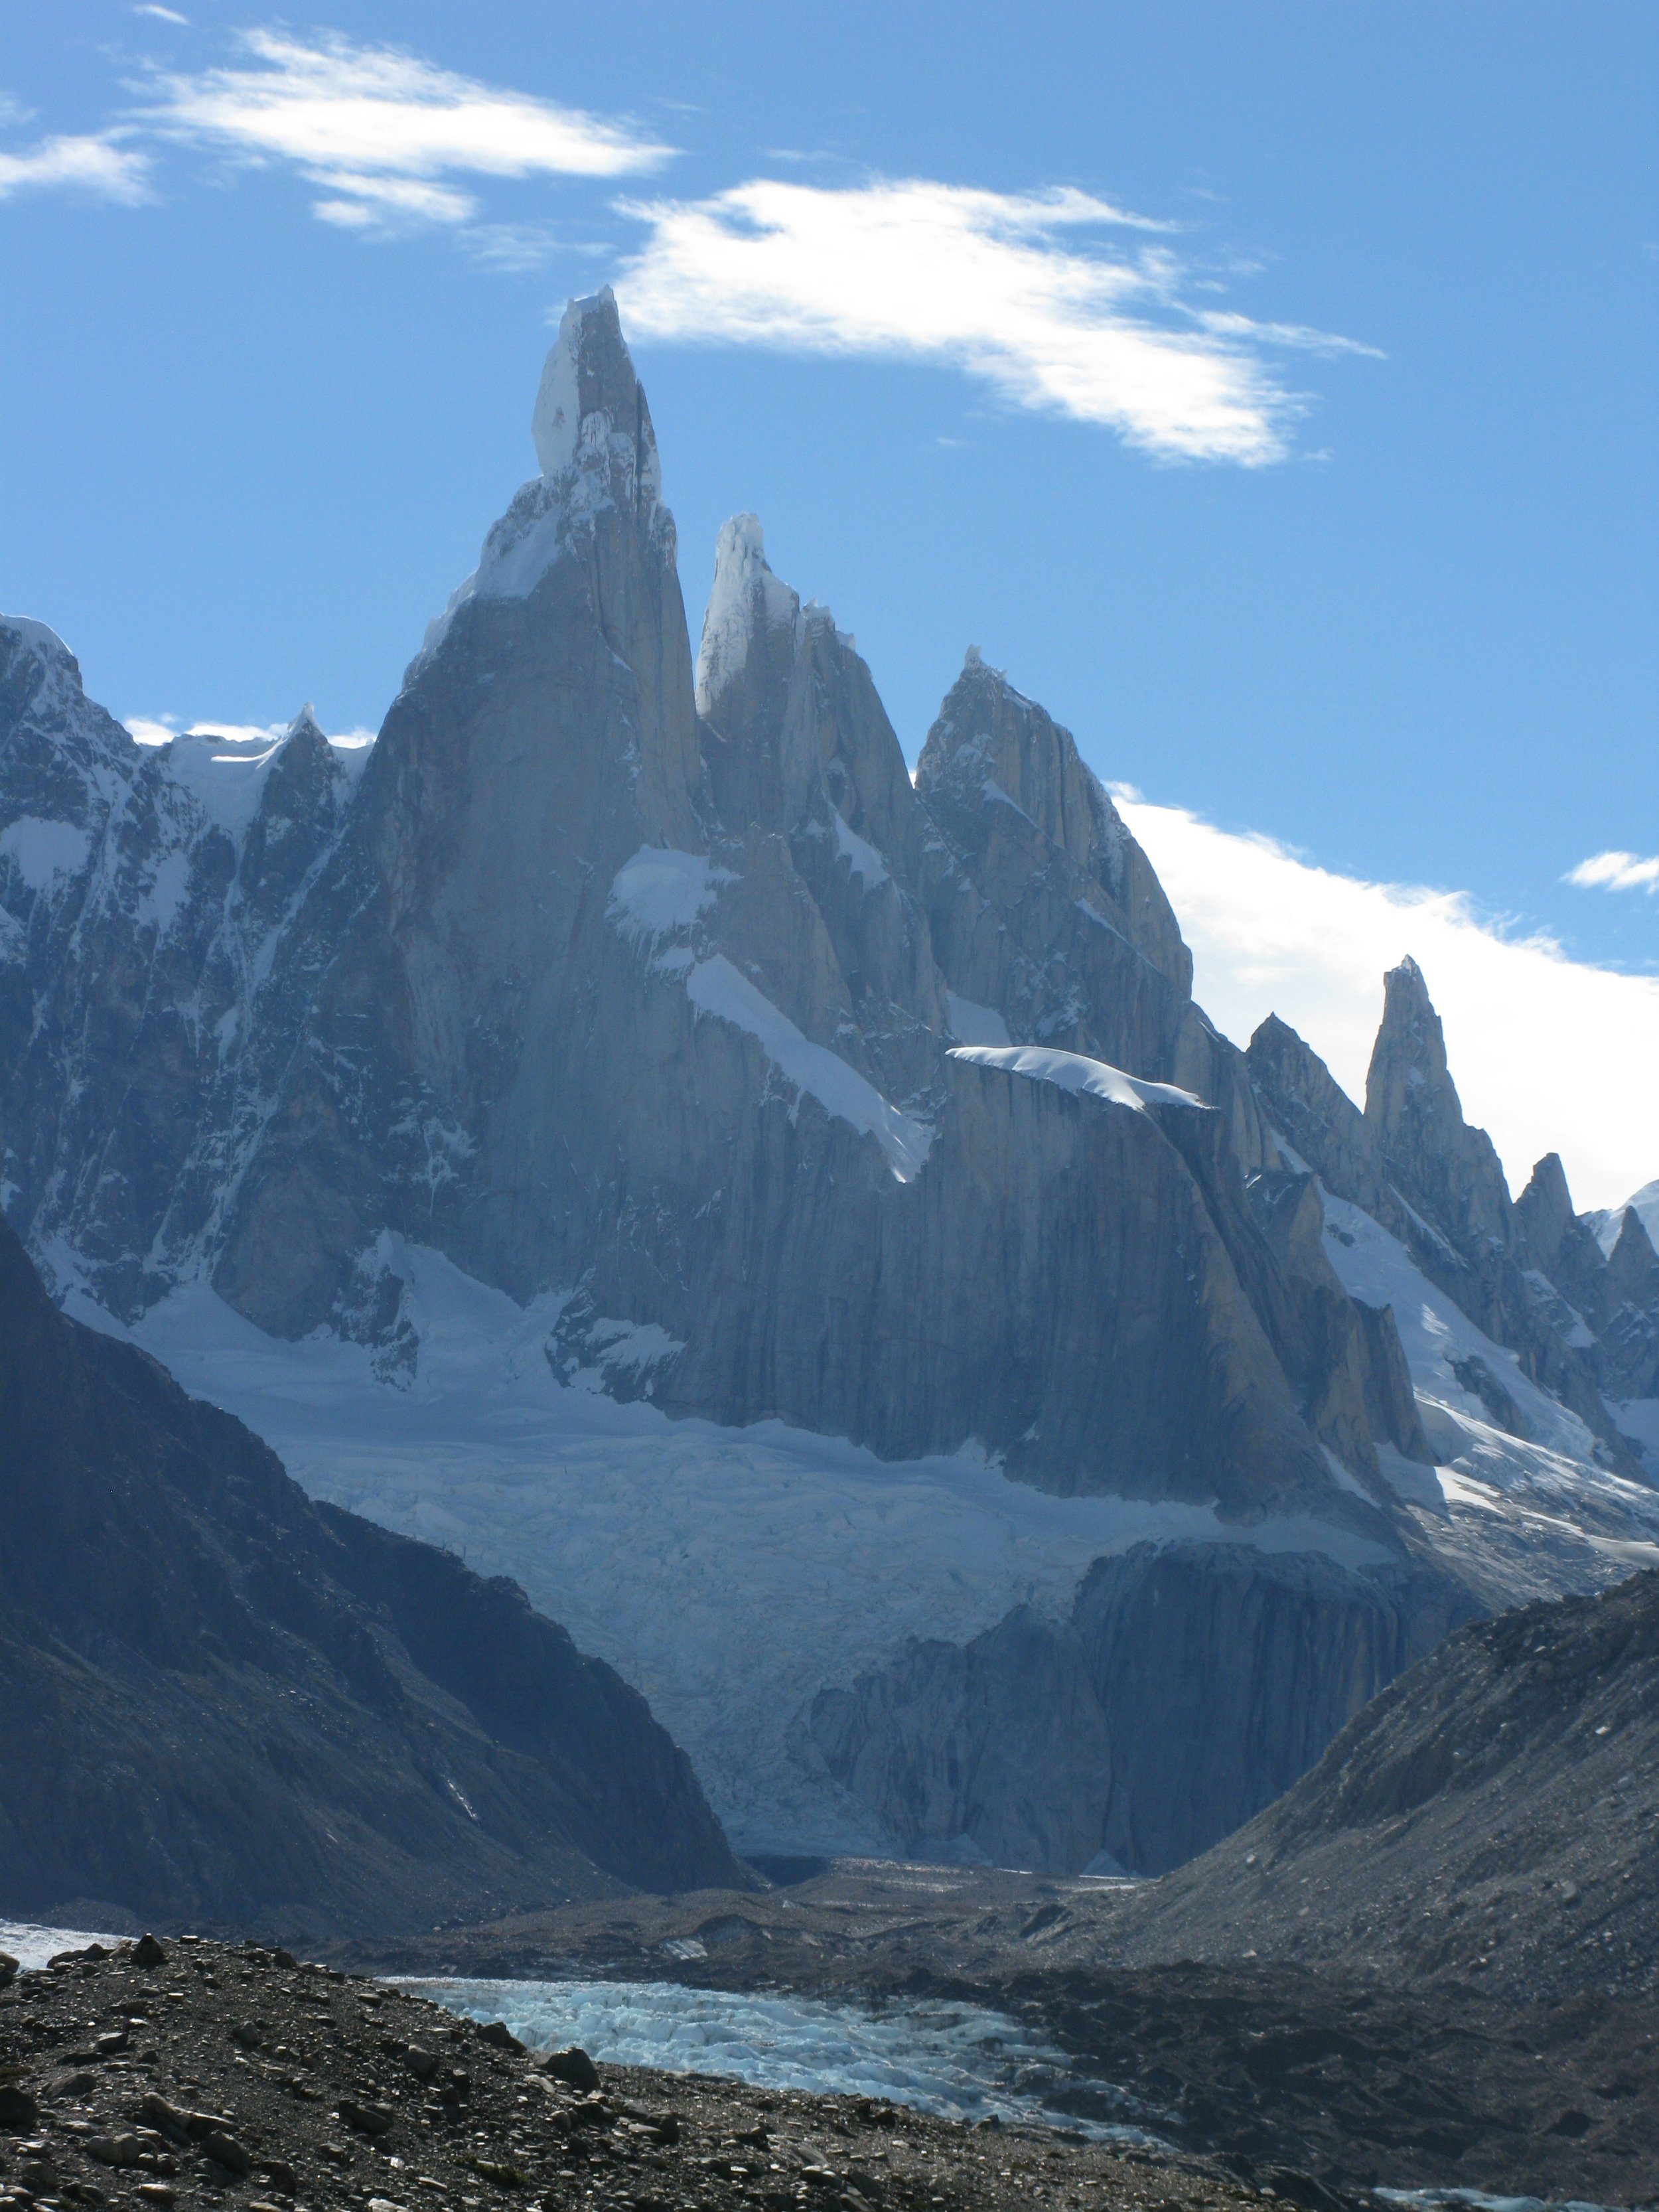 Cerro Torre with Torre Egger and Cerro Standhardt